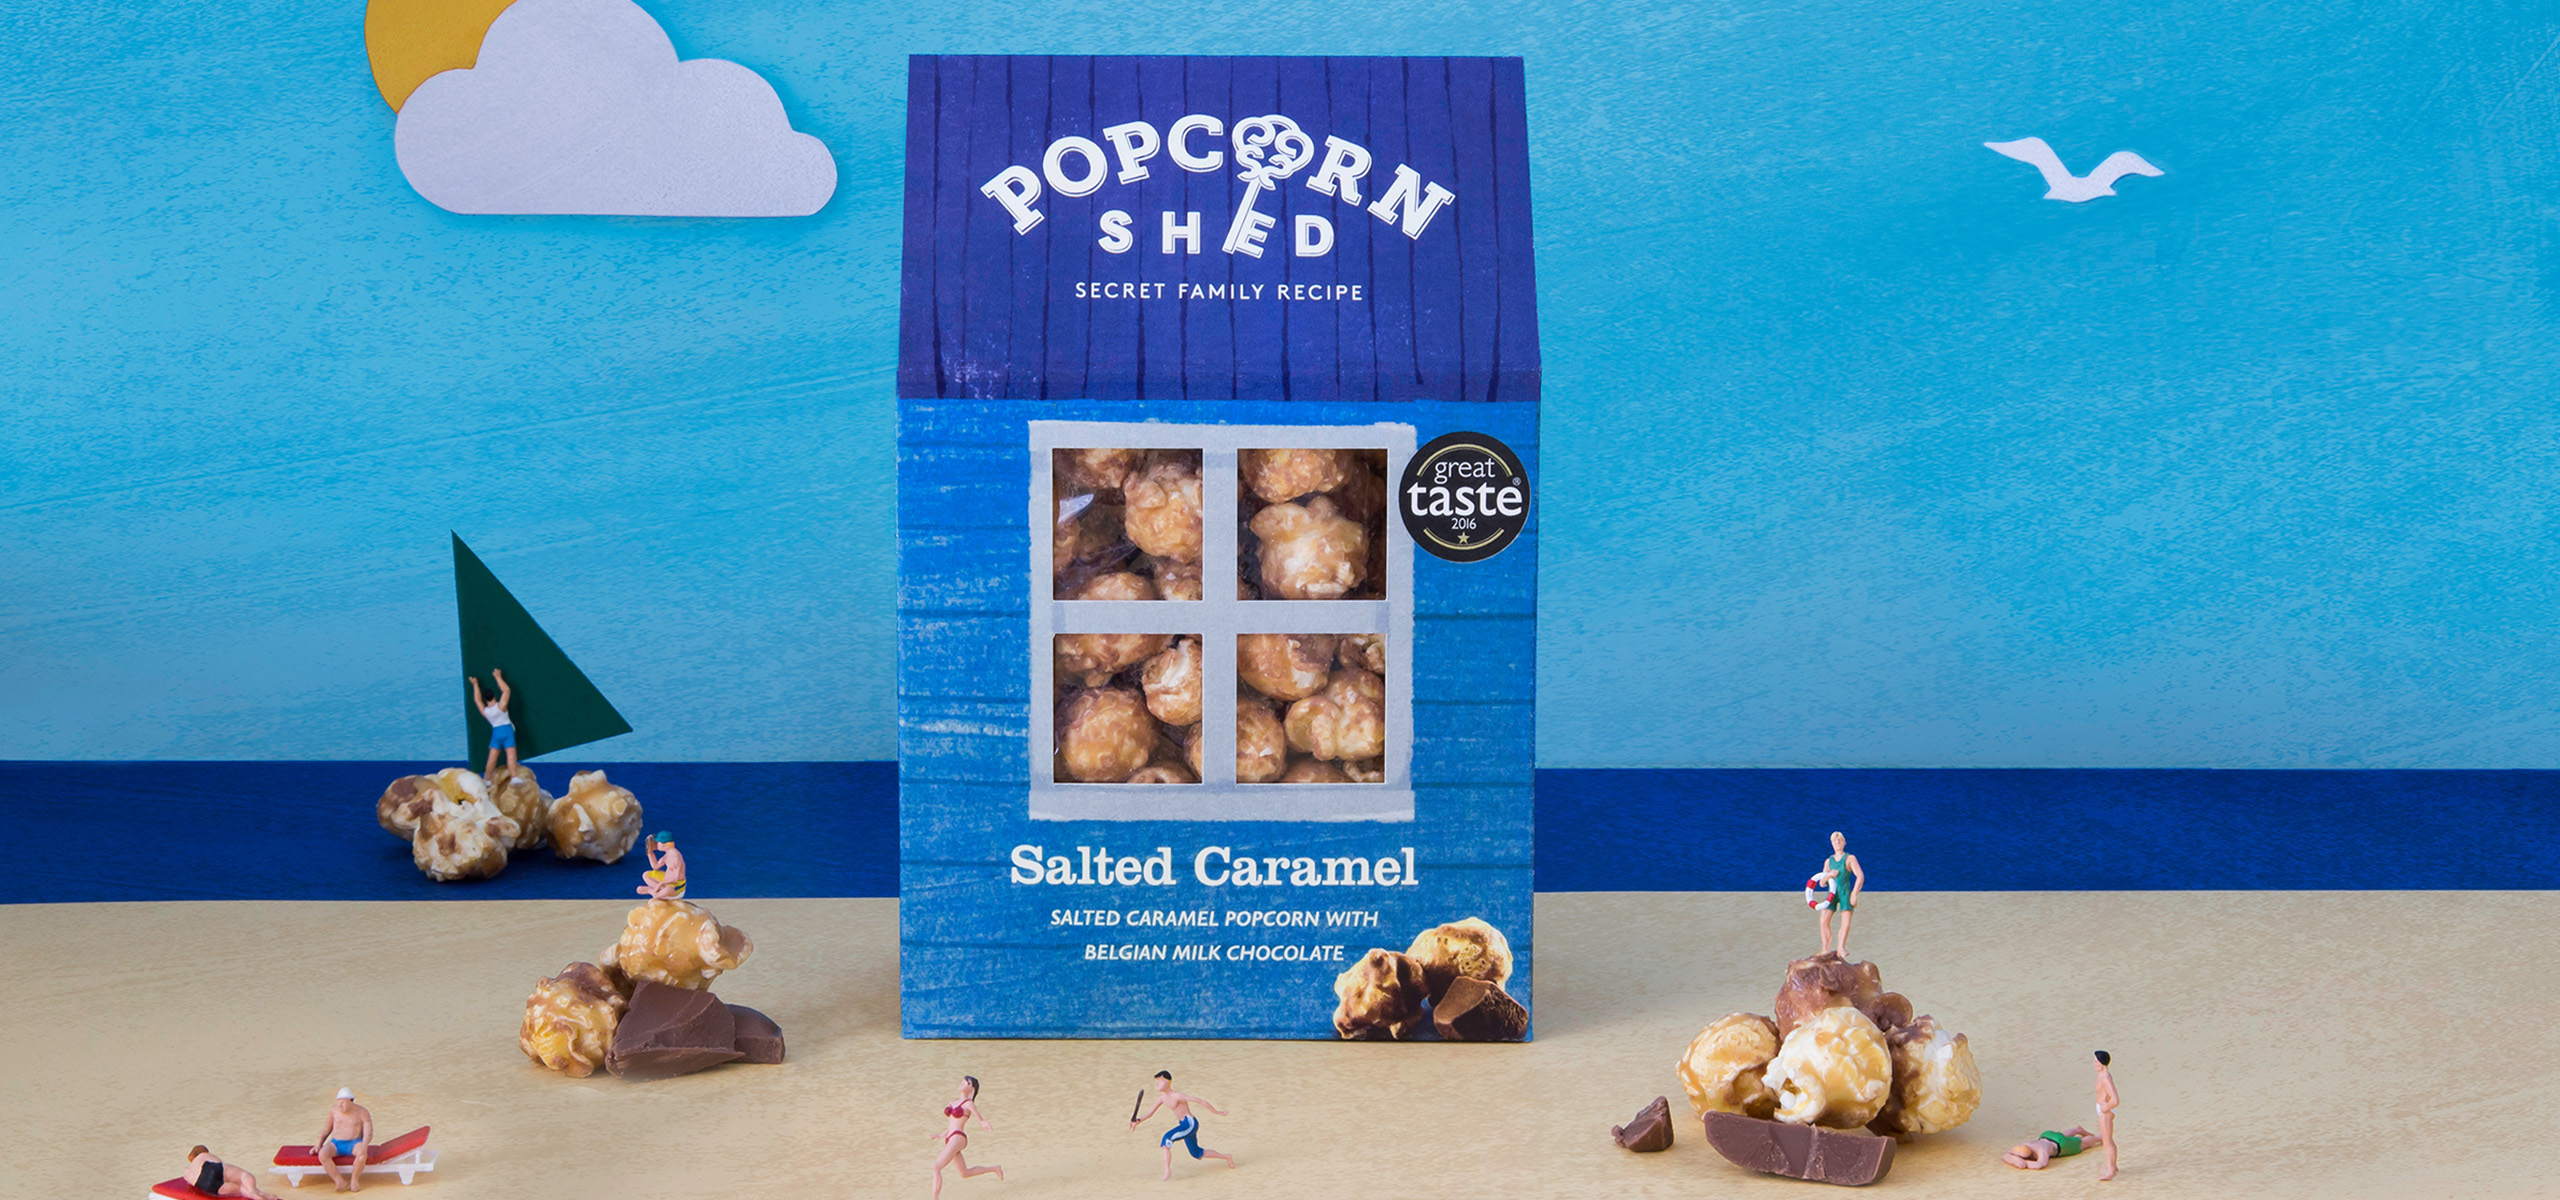 Salted Caramel flavour packaging design for food startup brand Popcorn Shed, designed by White Bear Studio